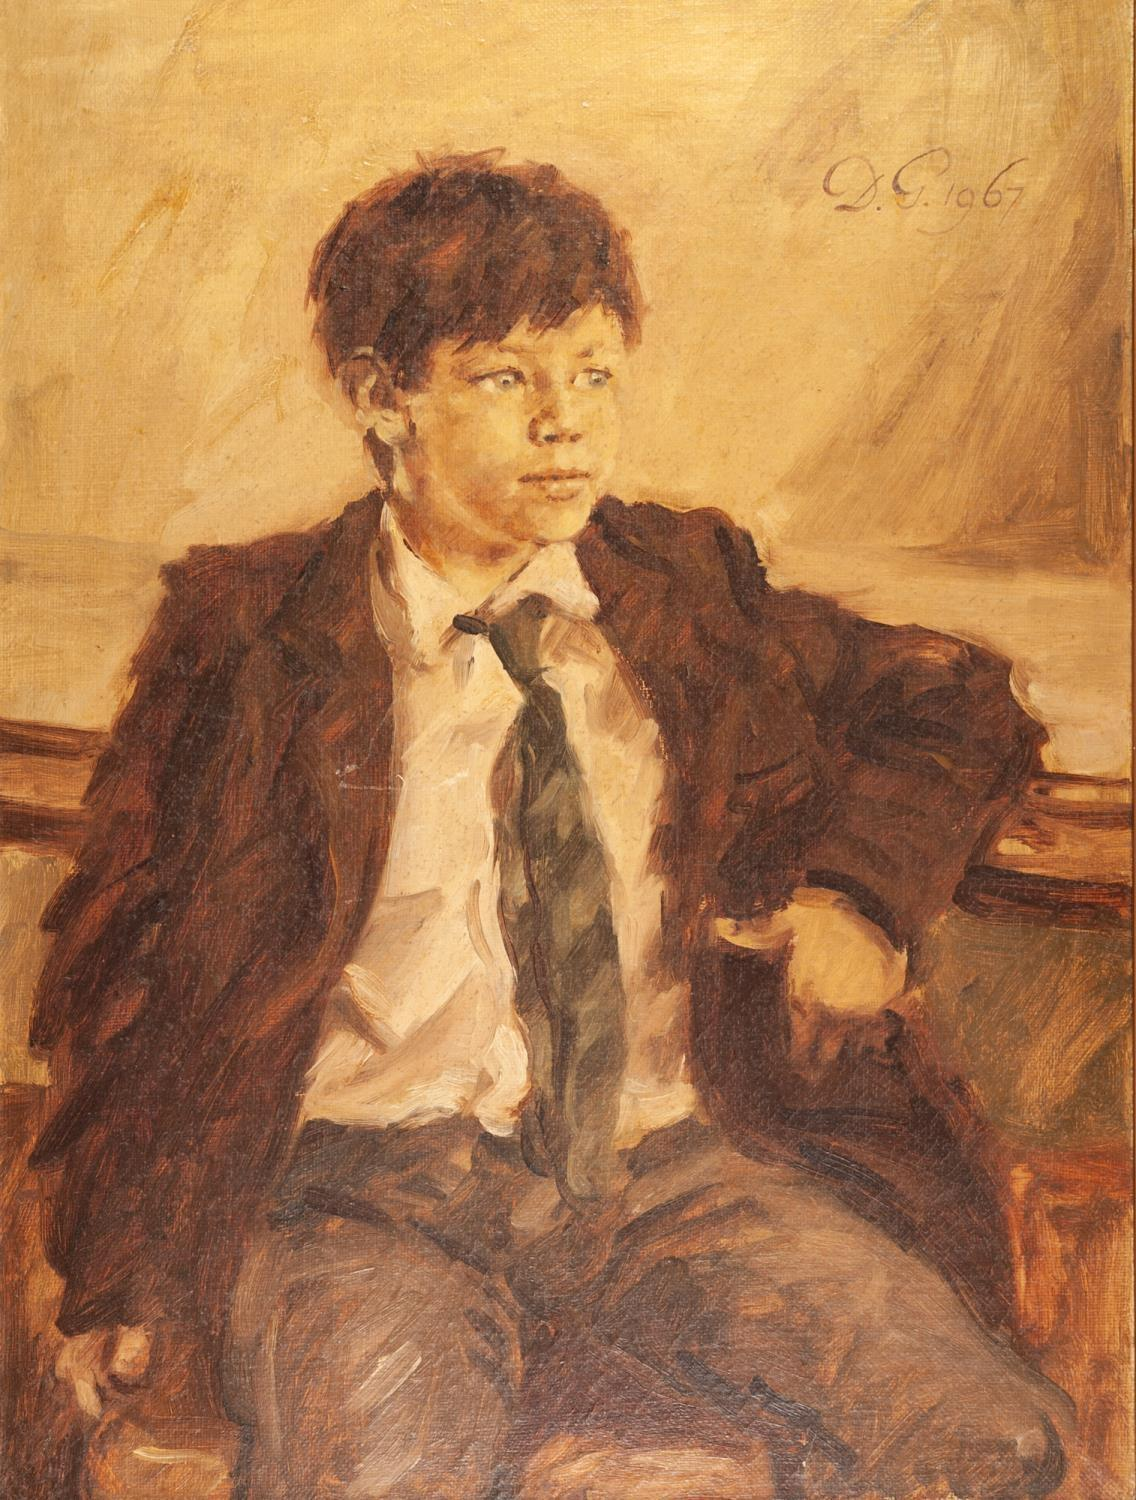 Lot 278 - DAVID GRIFFITHS (b.1939) OIL PAINTING ON CANVAS Three quarter length portrait of a seated boy